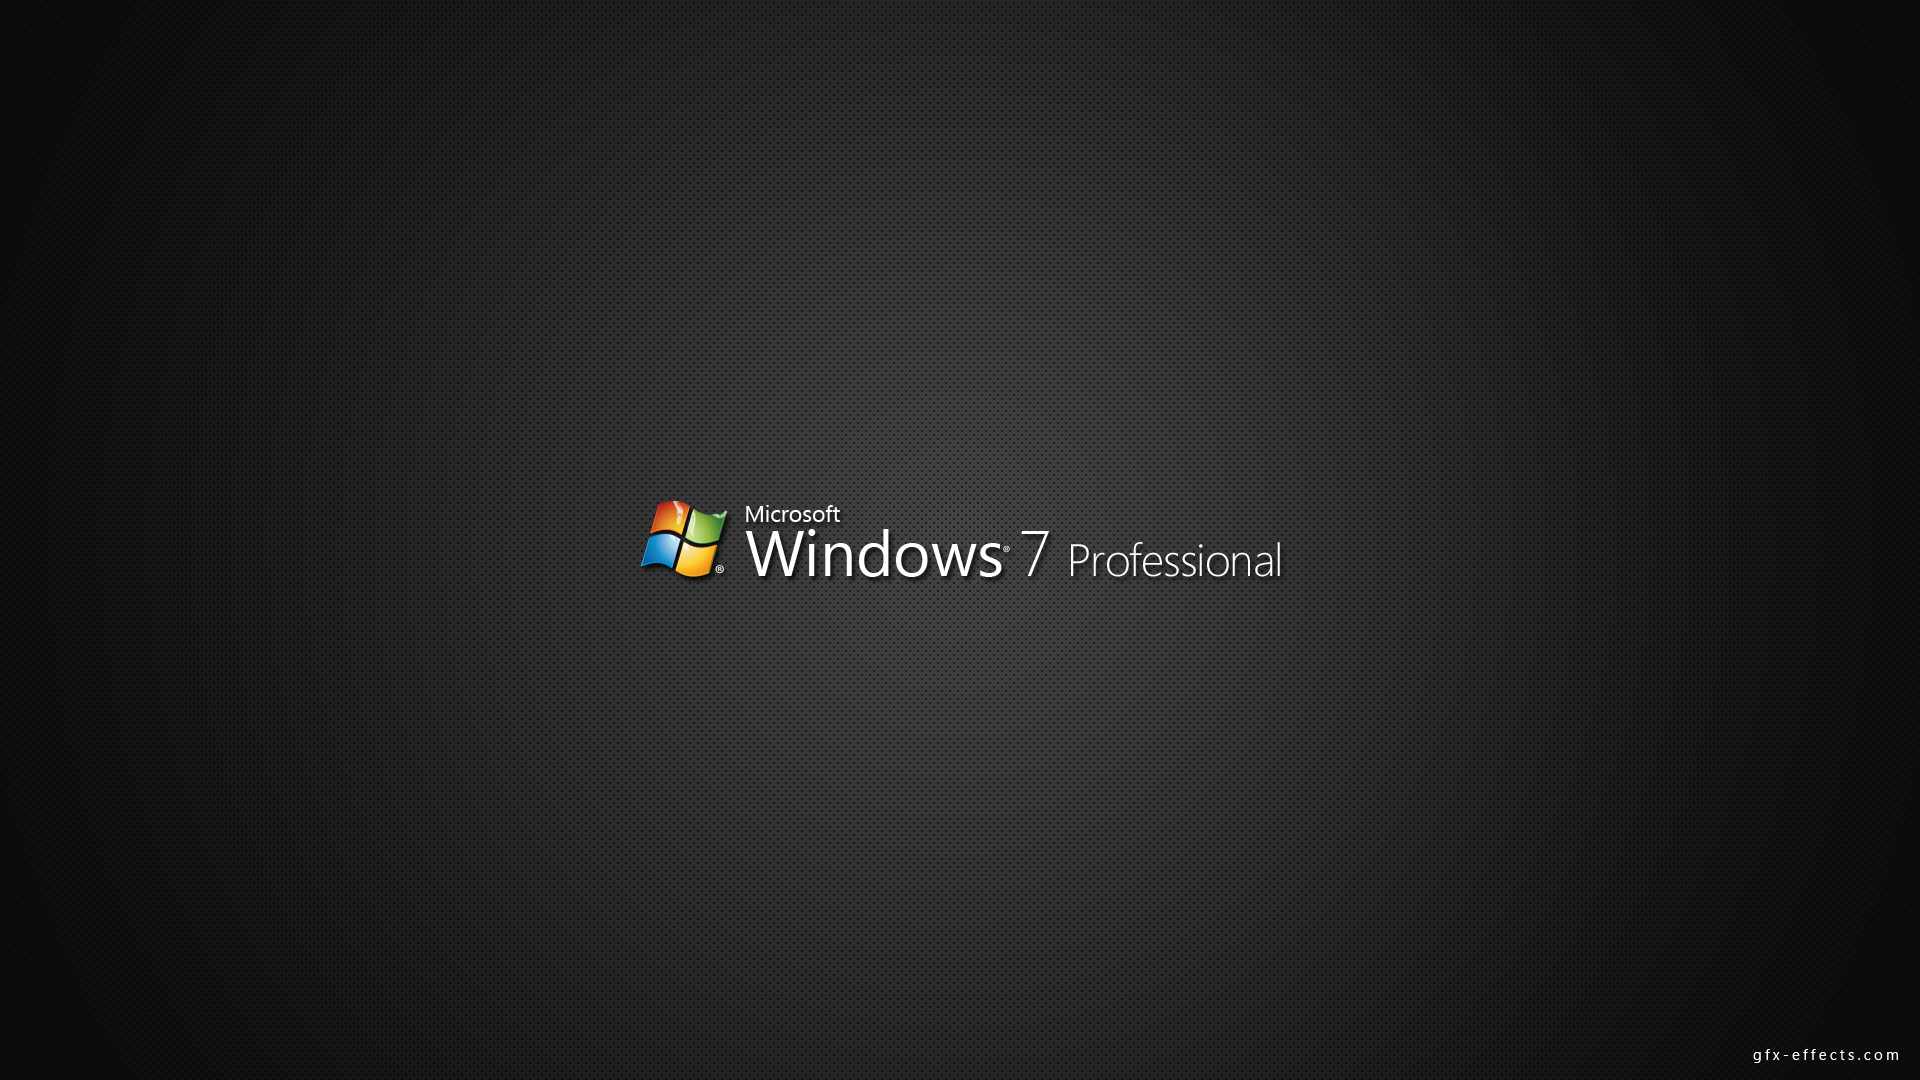 windows-7-pro-by-ant-ony-on-deviantart-n-a-ibackgroundz.com.jpg.png